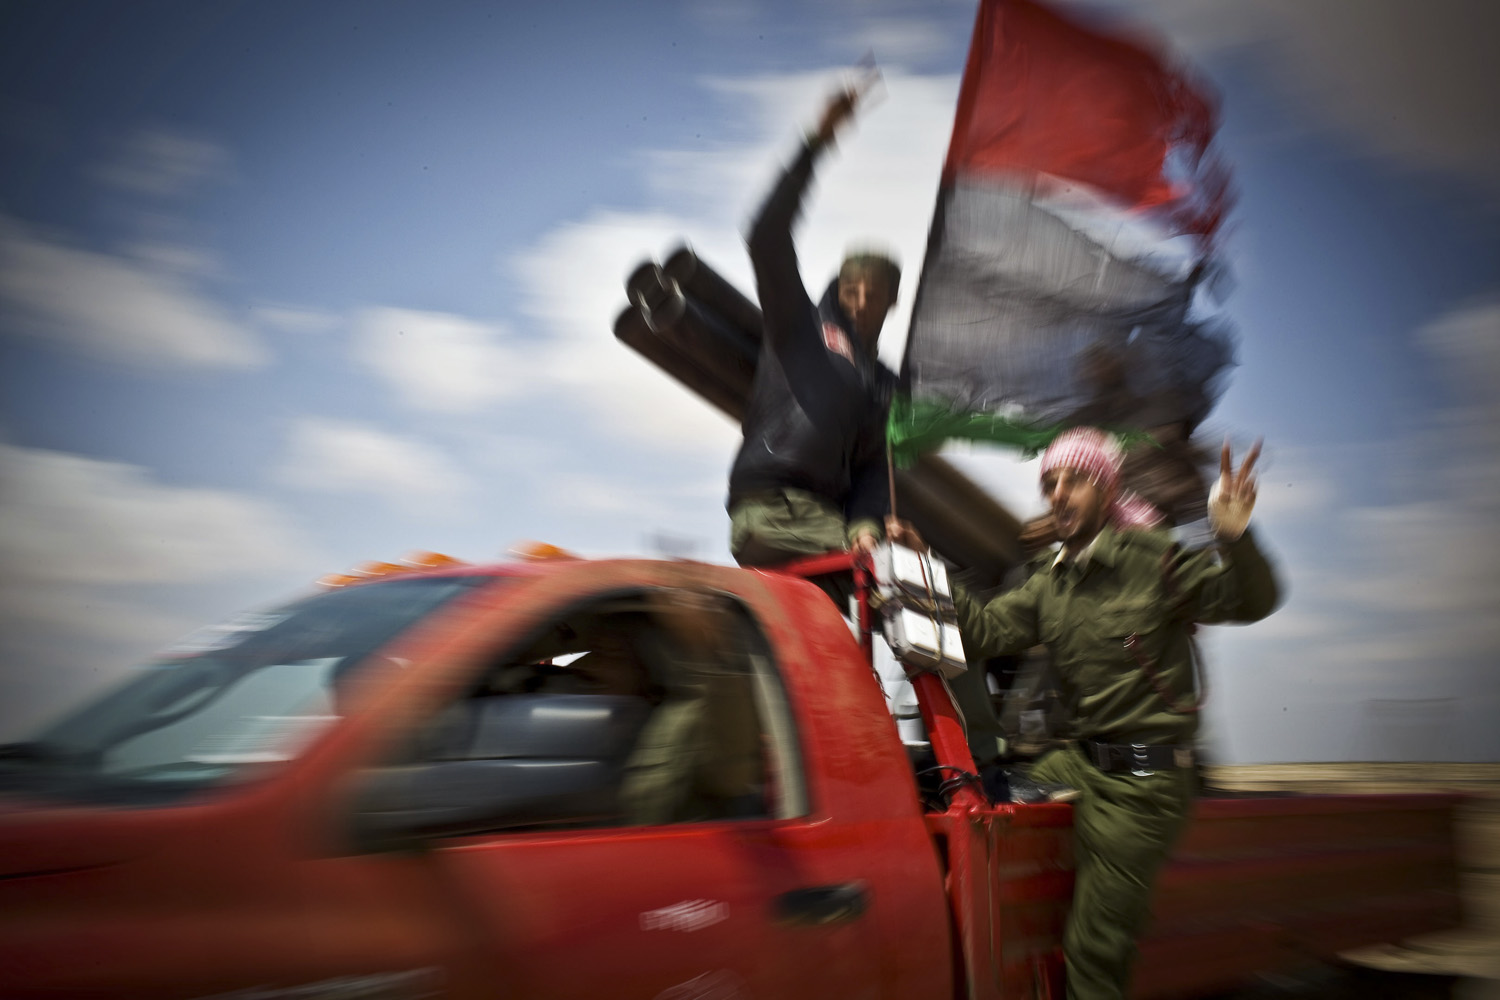 Anton Hammerl's picture of anti-Gaddafi freedom fighters outside the recaptured town of Brega, taken in Libya on April 3, 2011.